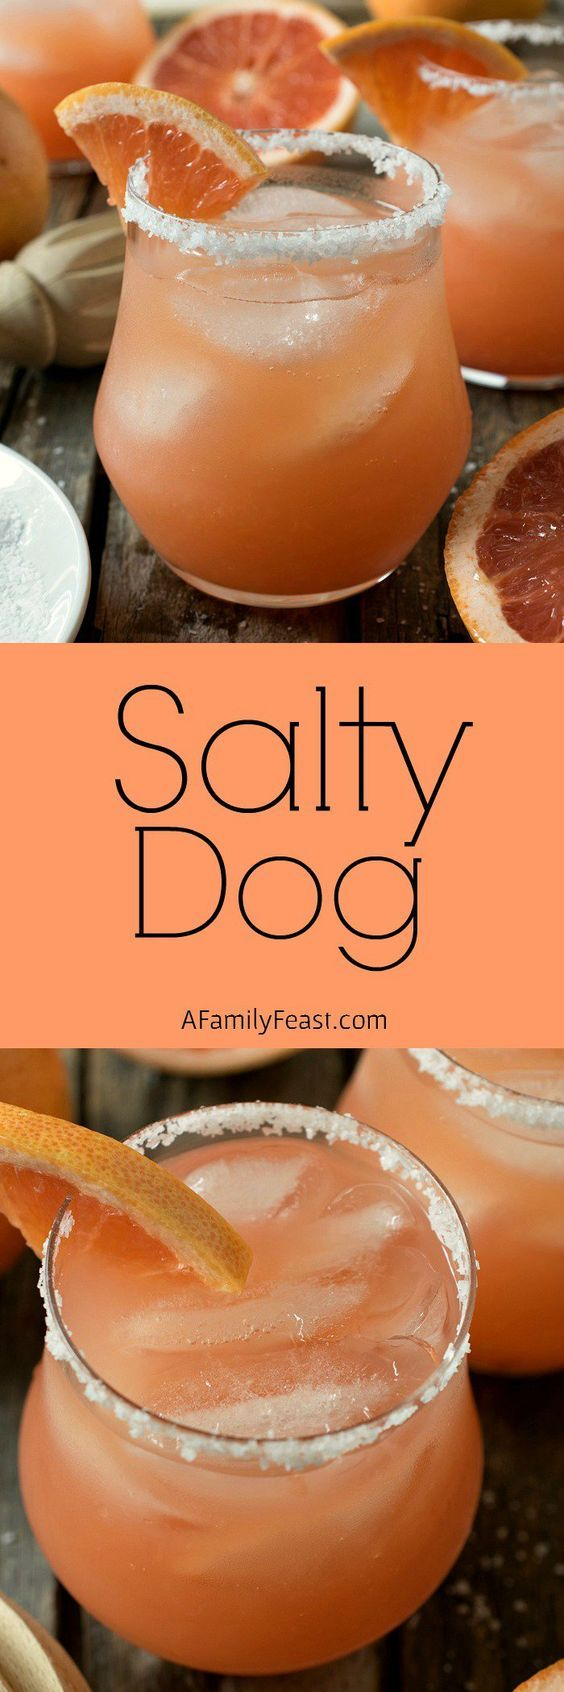 Salty Dog ~ a delicious cocktail made with grapefruit juice, vodka or gin, and served in a salted-rimmed glass!